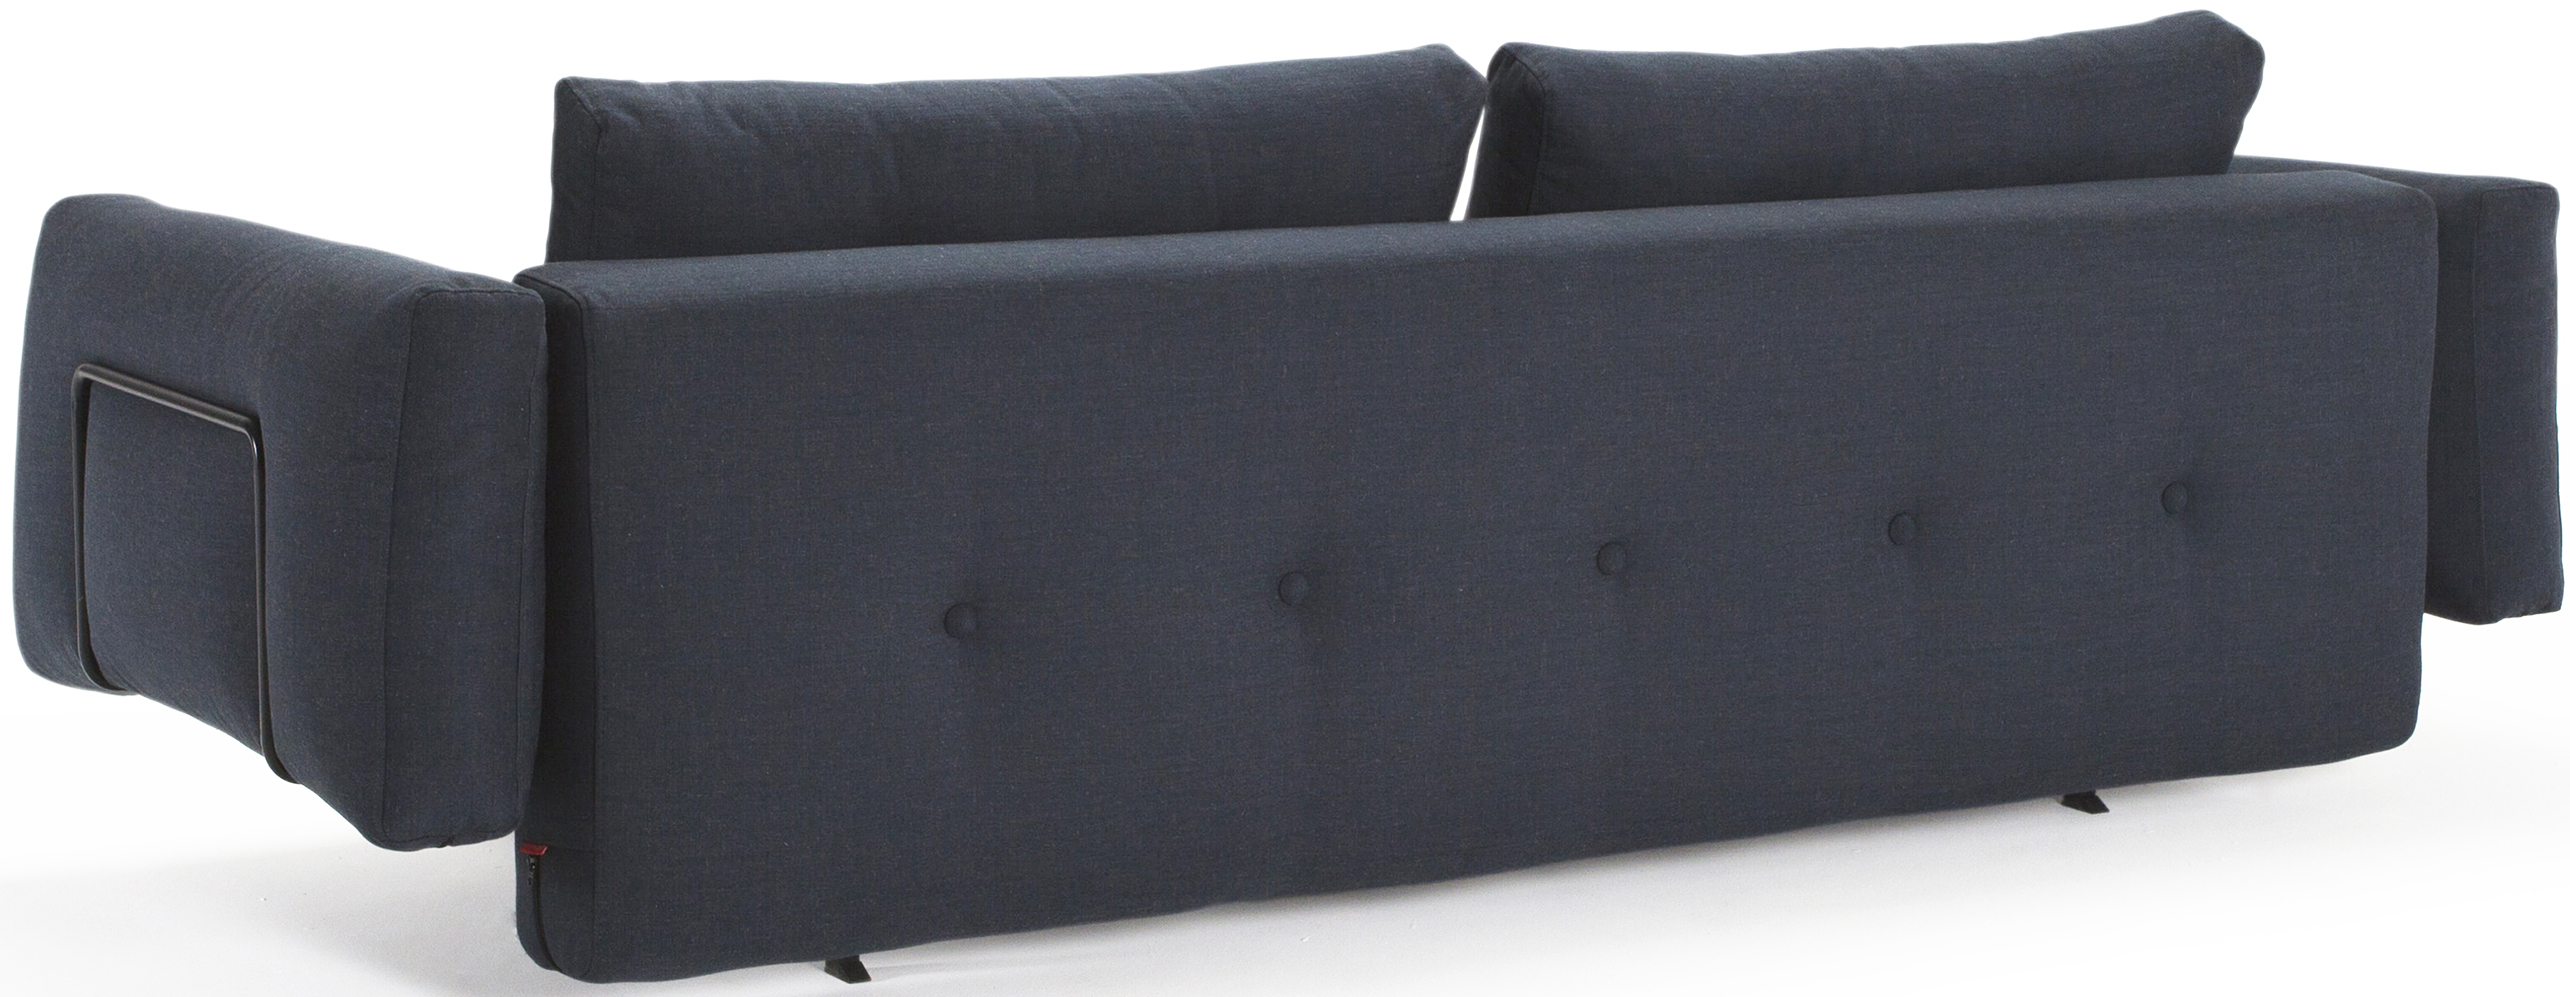 innovation living recast plus sofa bed